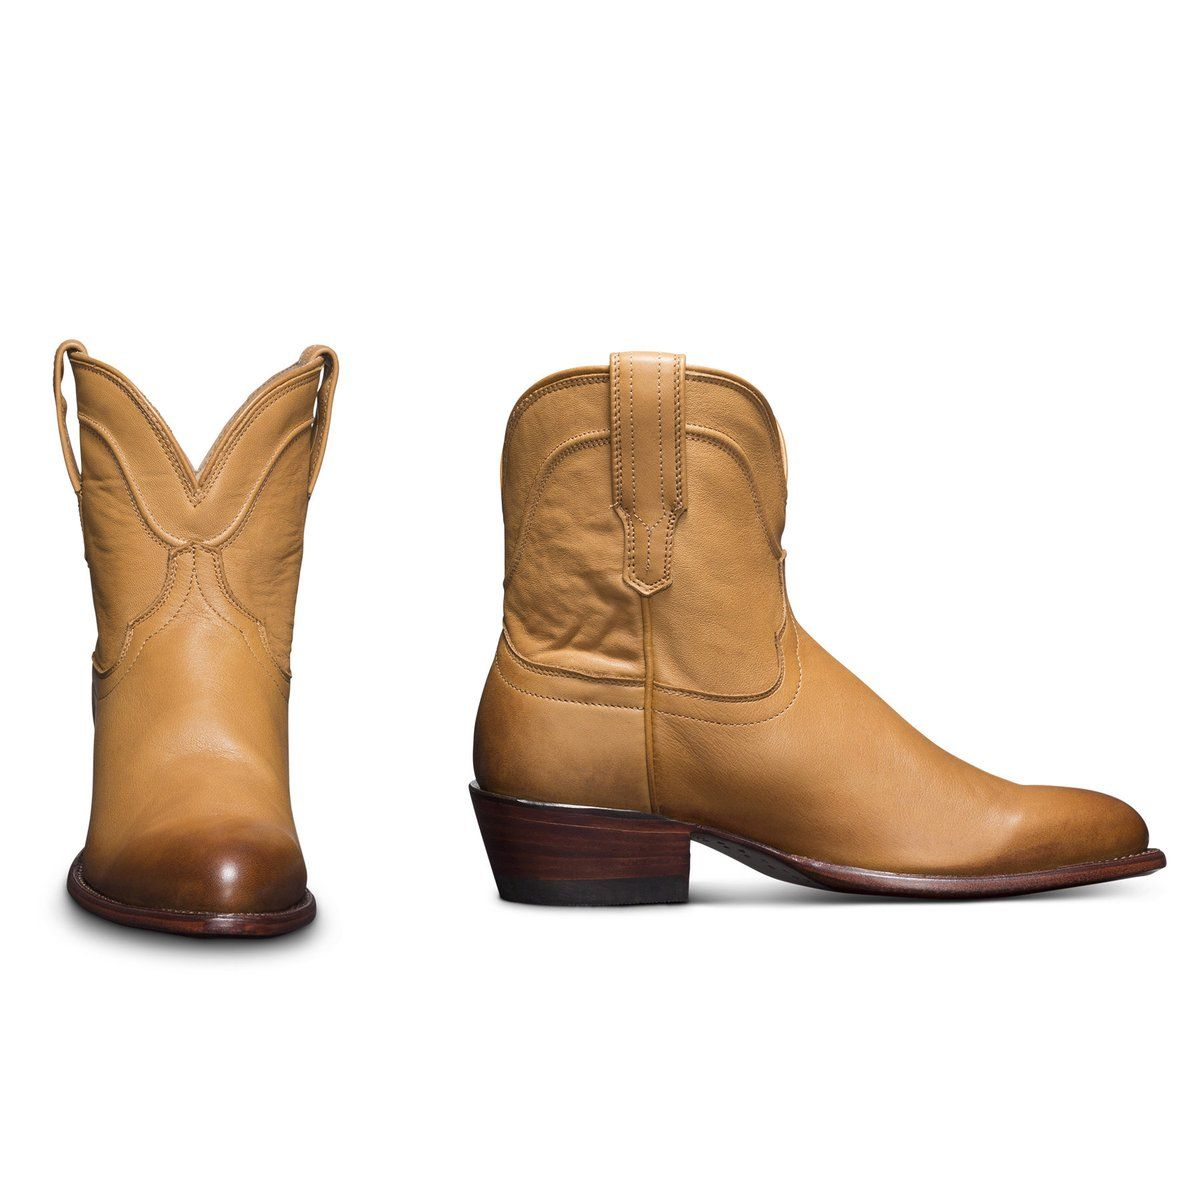 1c3c130b8e5 If You Want a Cowboy Boot